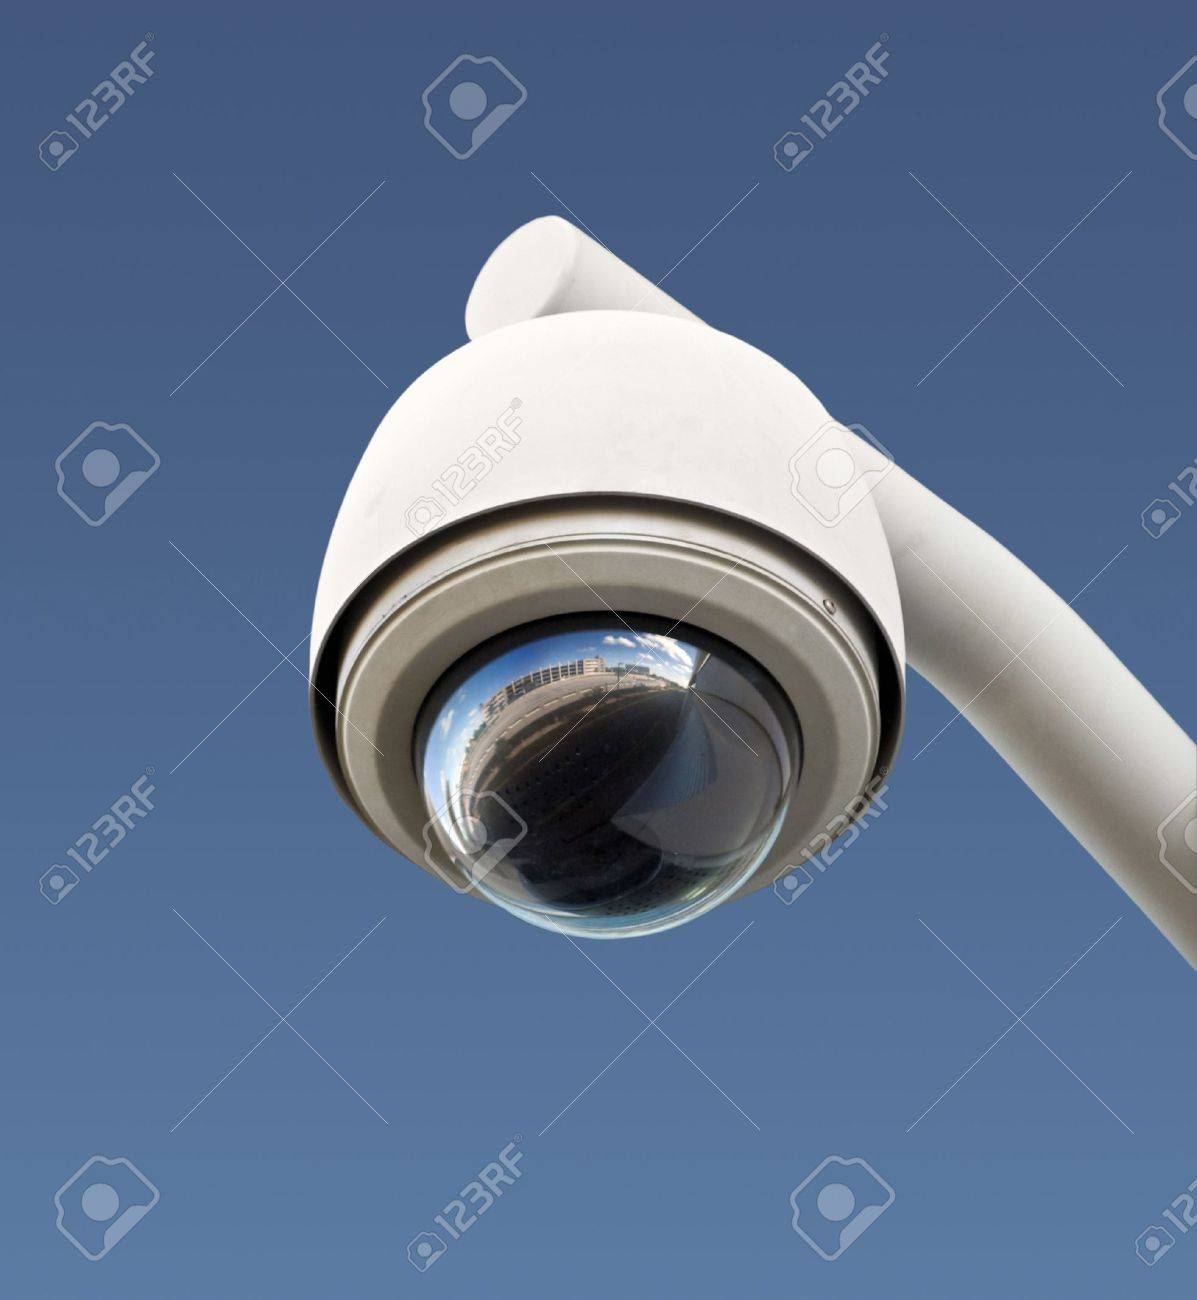 High tech overhead security camera with a gradient blue sky. Stock Photo - 8566543